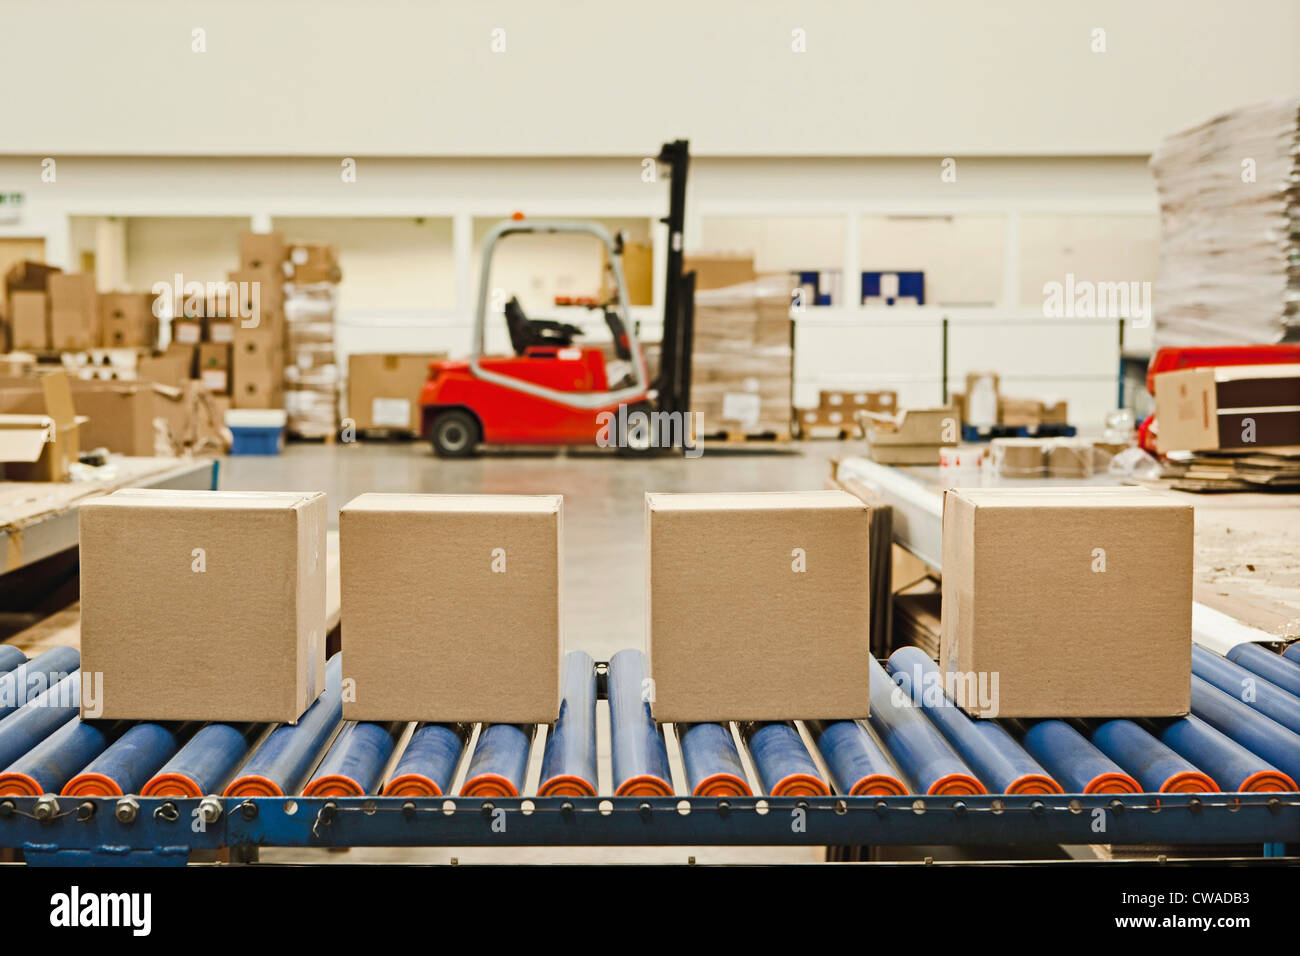 Four cardboard boxes on conveyor belt - Stock Image